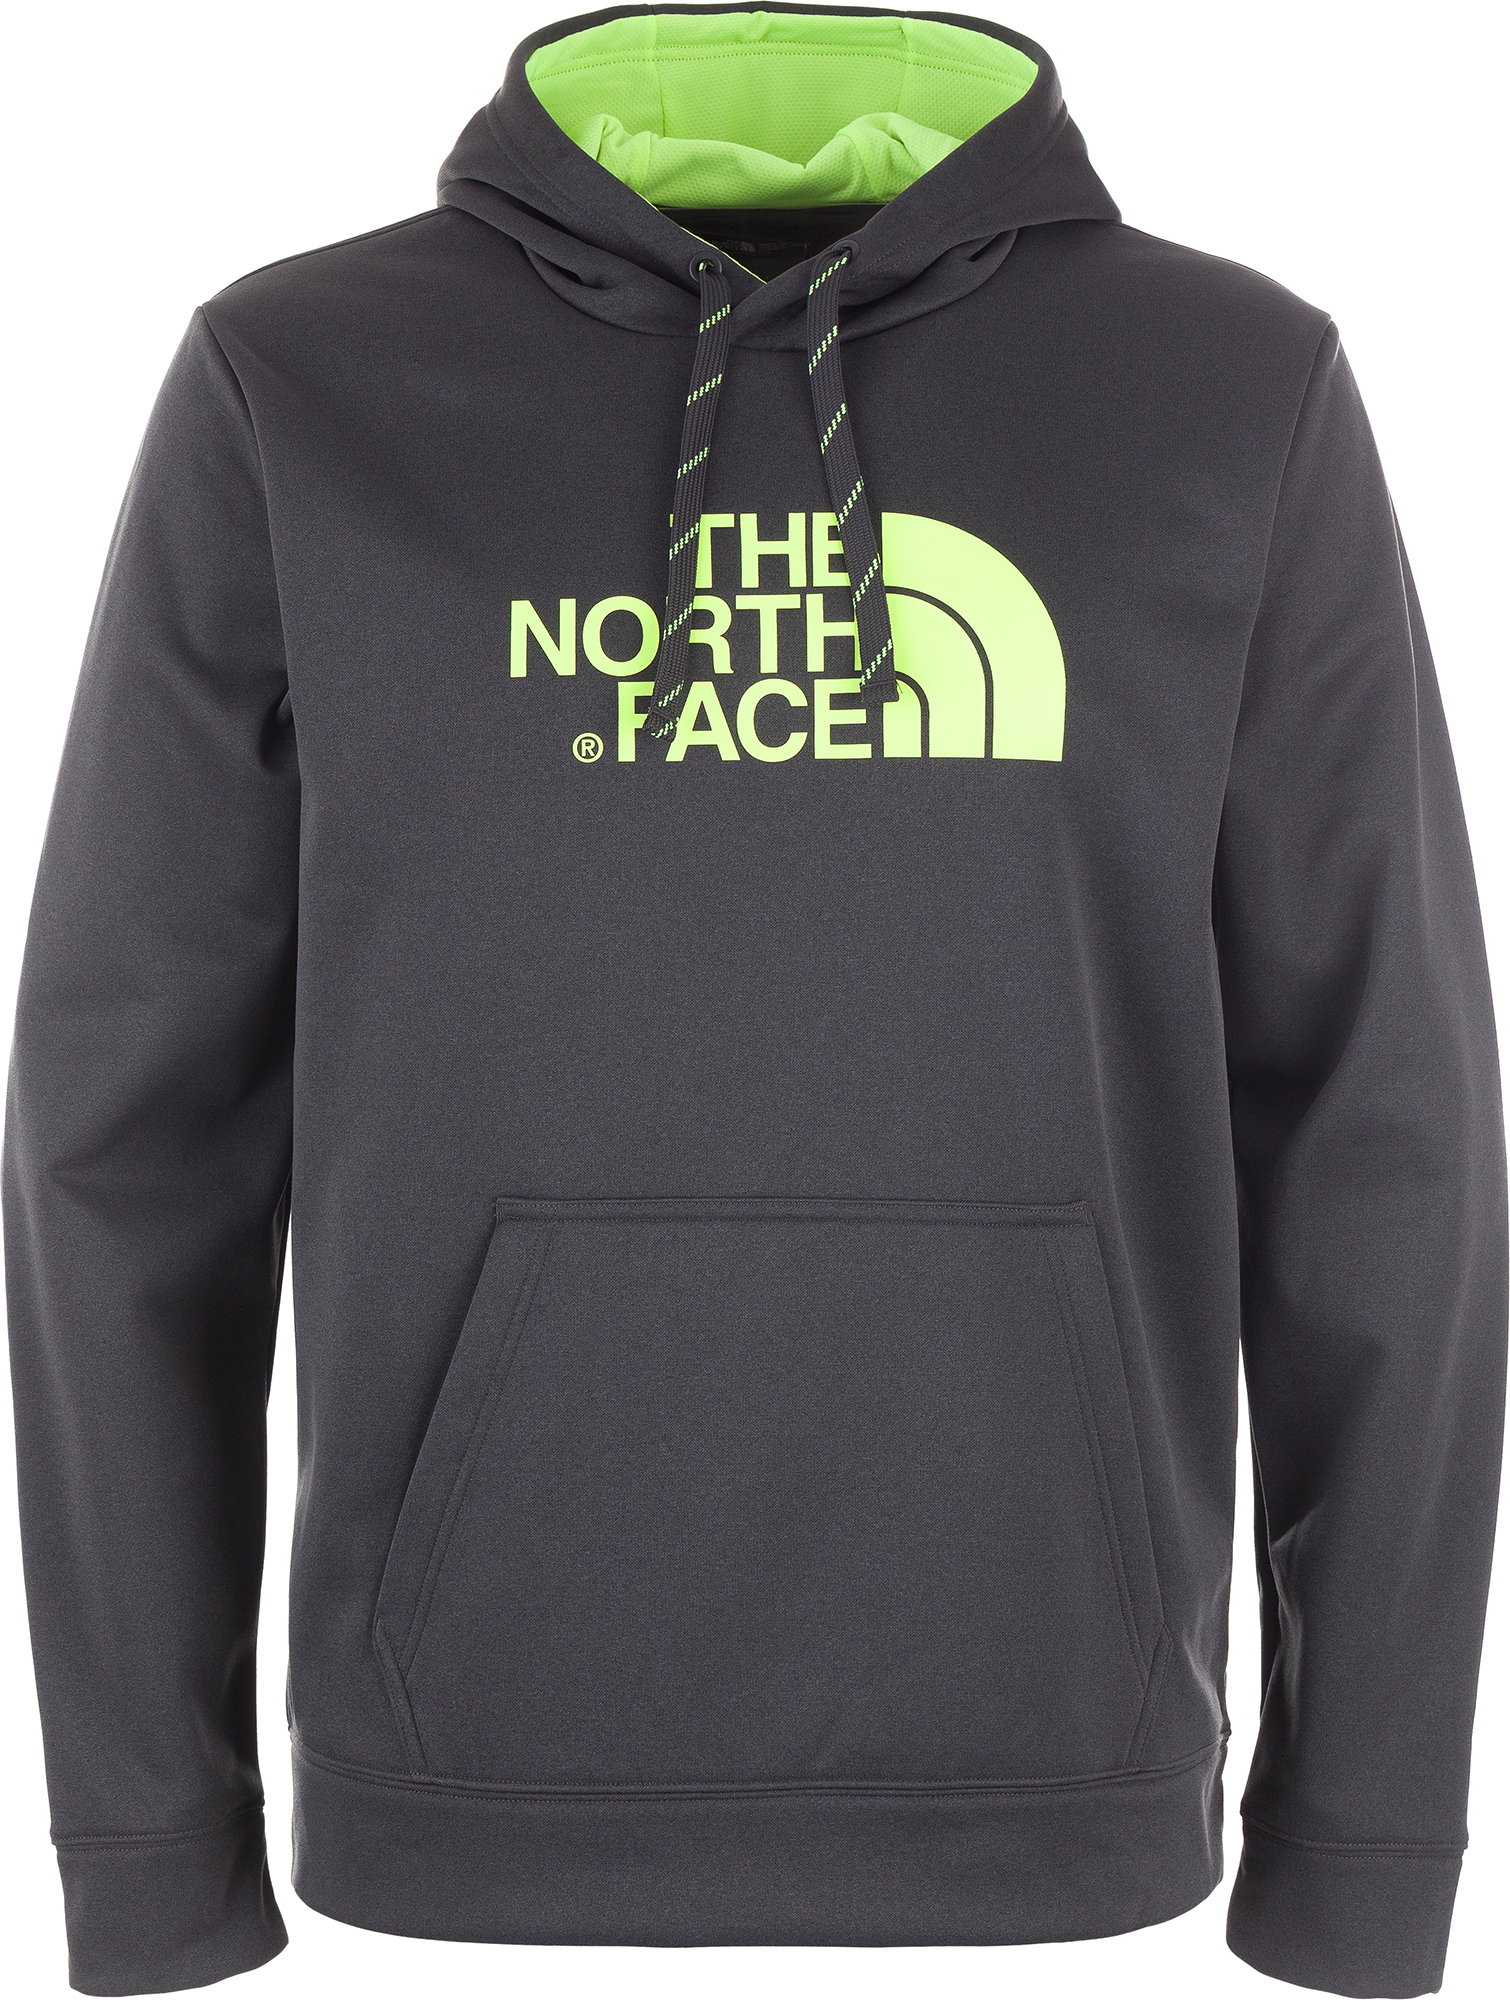 The North Face Джемпер мужской The North Face Surgent